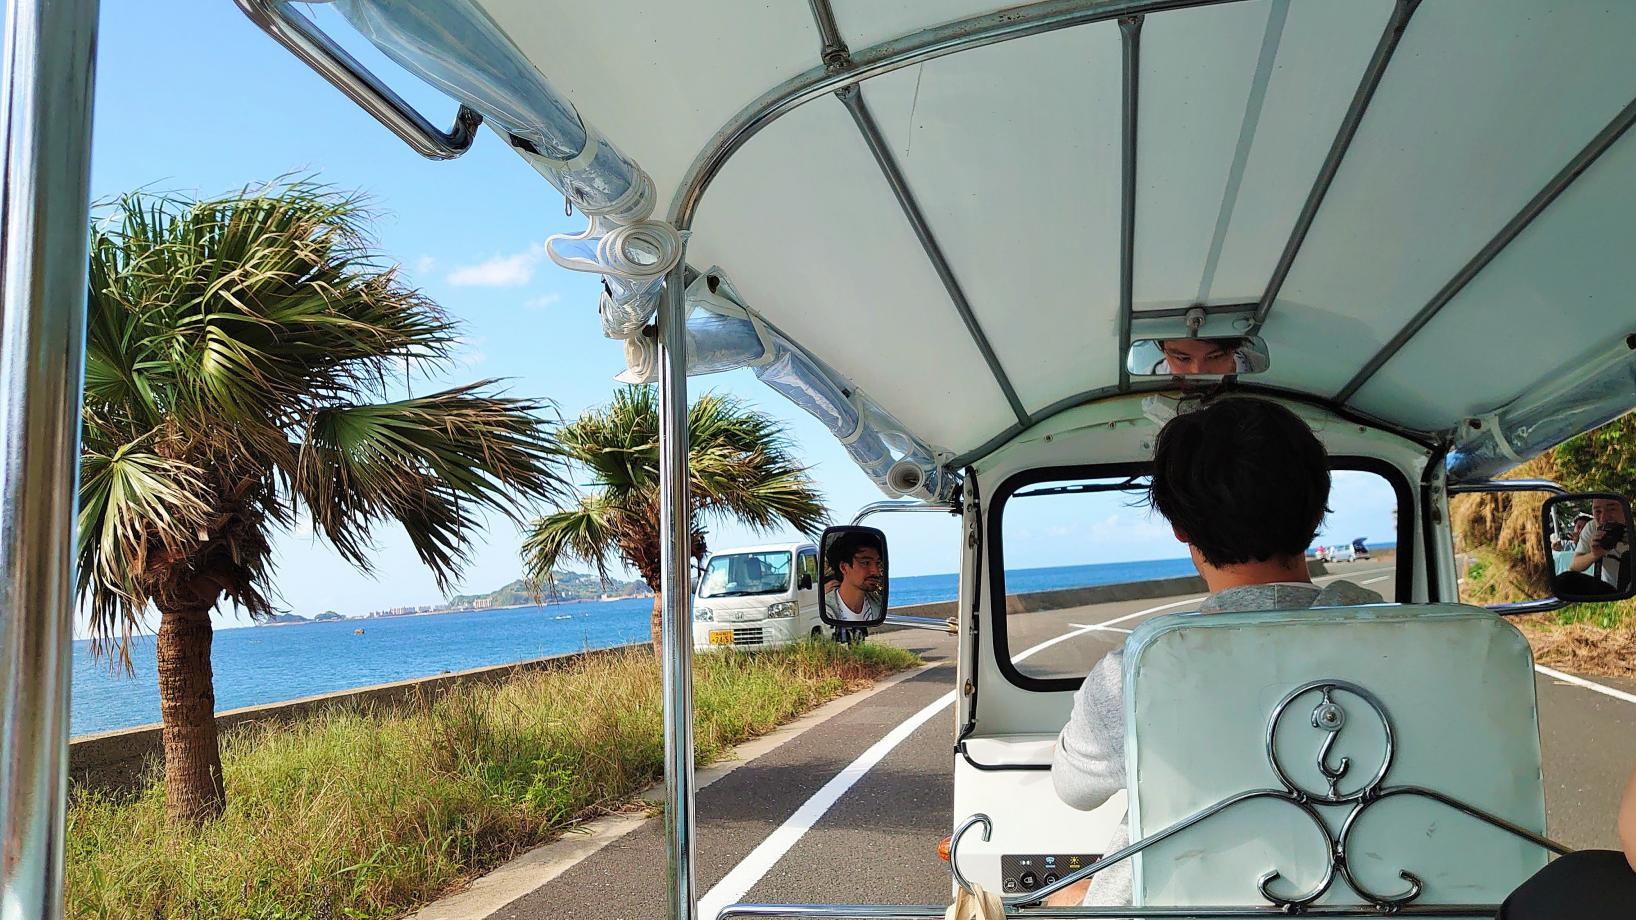 Iojima: The Resort Island Perfect for a Getaway Trip-5